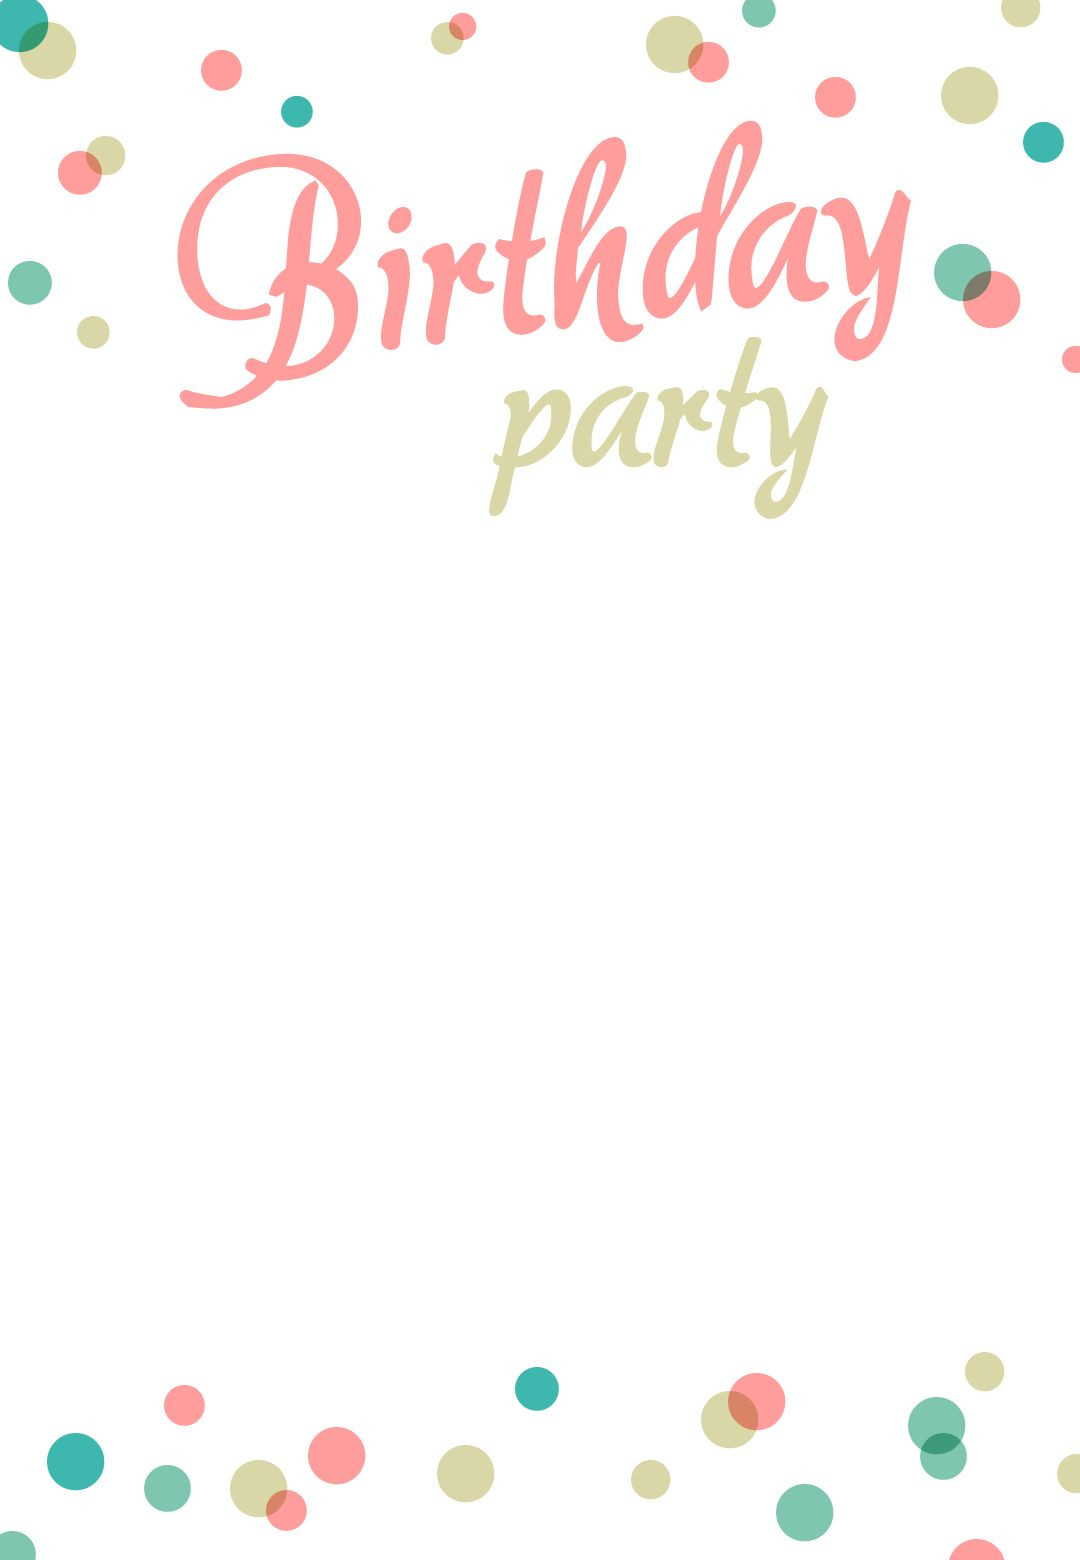 Best ideas about Birthday Party Invitation Template . Save or Pin Birthday Party Invitation Free Printable Now.